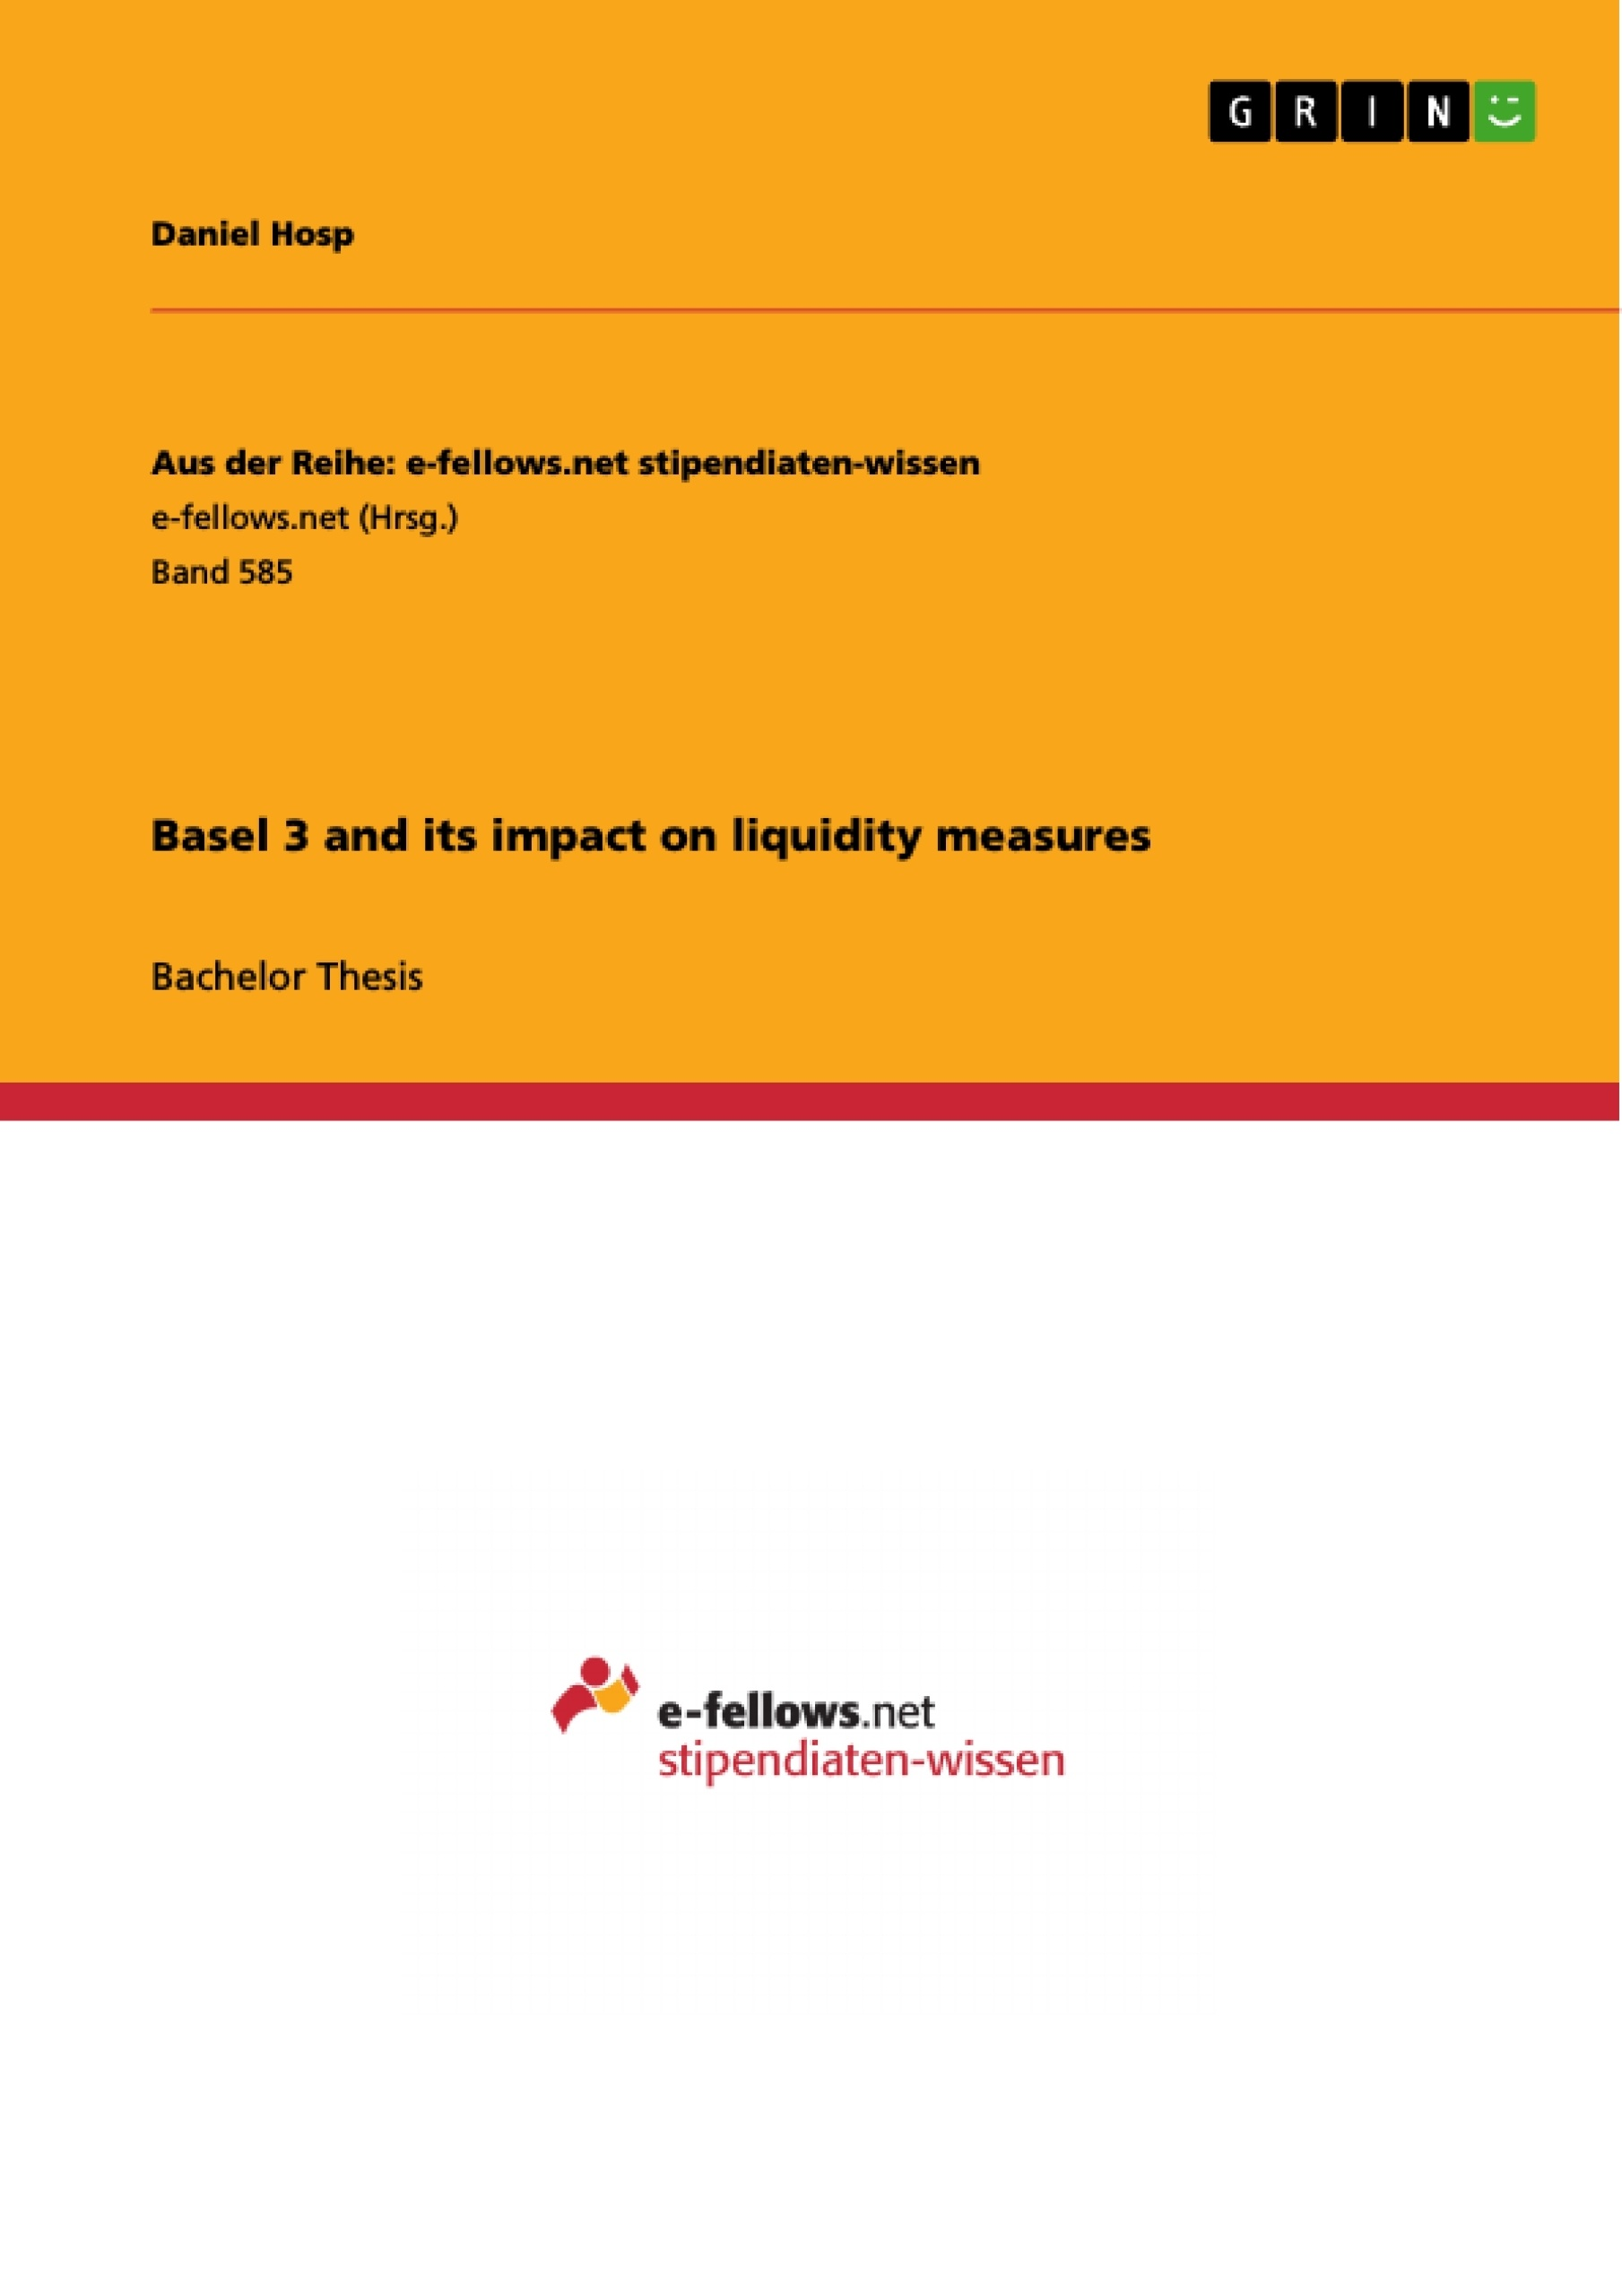 Title: Basel 3 and its impact on liquidity measures